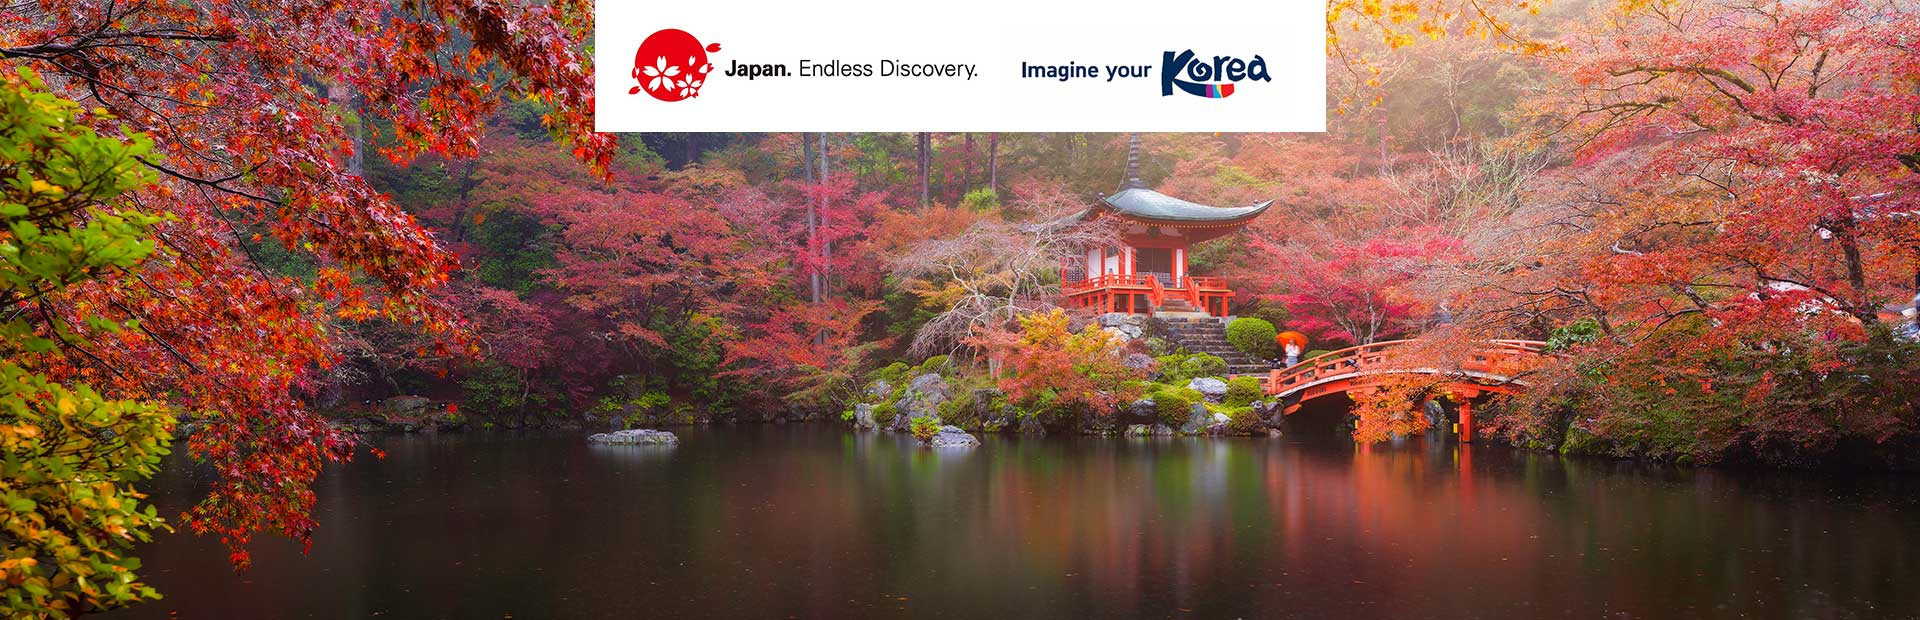 Tailor-made tour to Japan and Korea